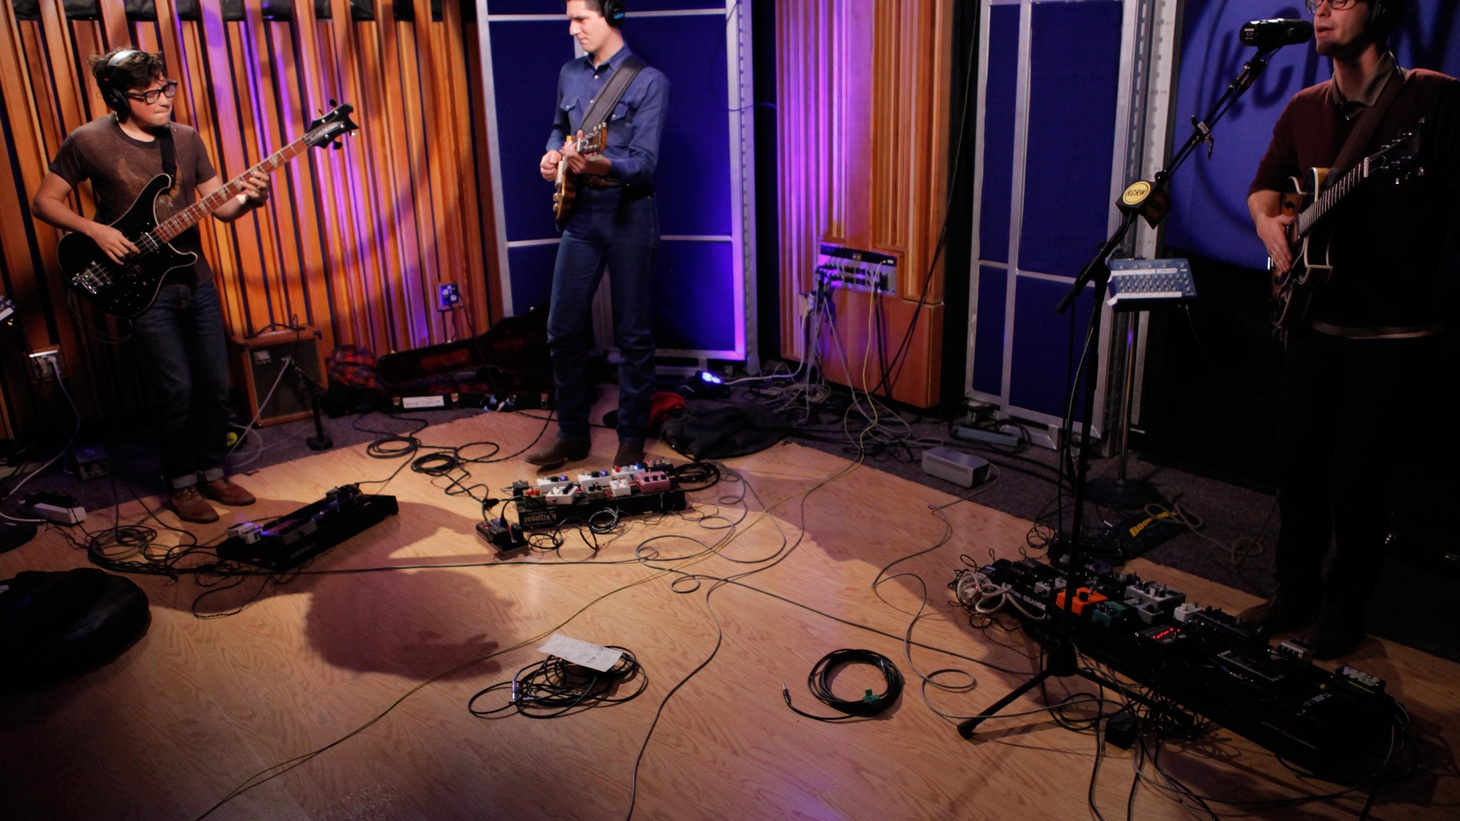 Austin-based White Denim recently returned to Morning Becomes Eclectic for a live session.